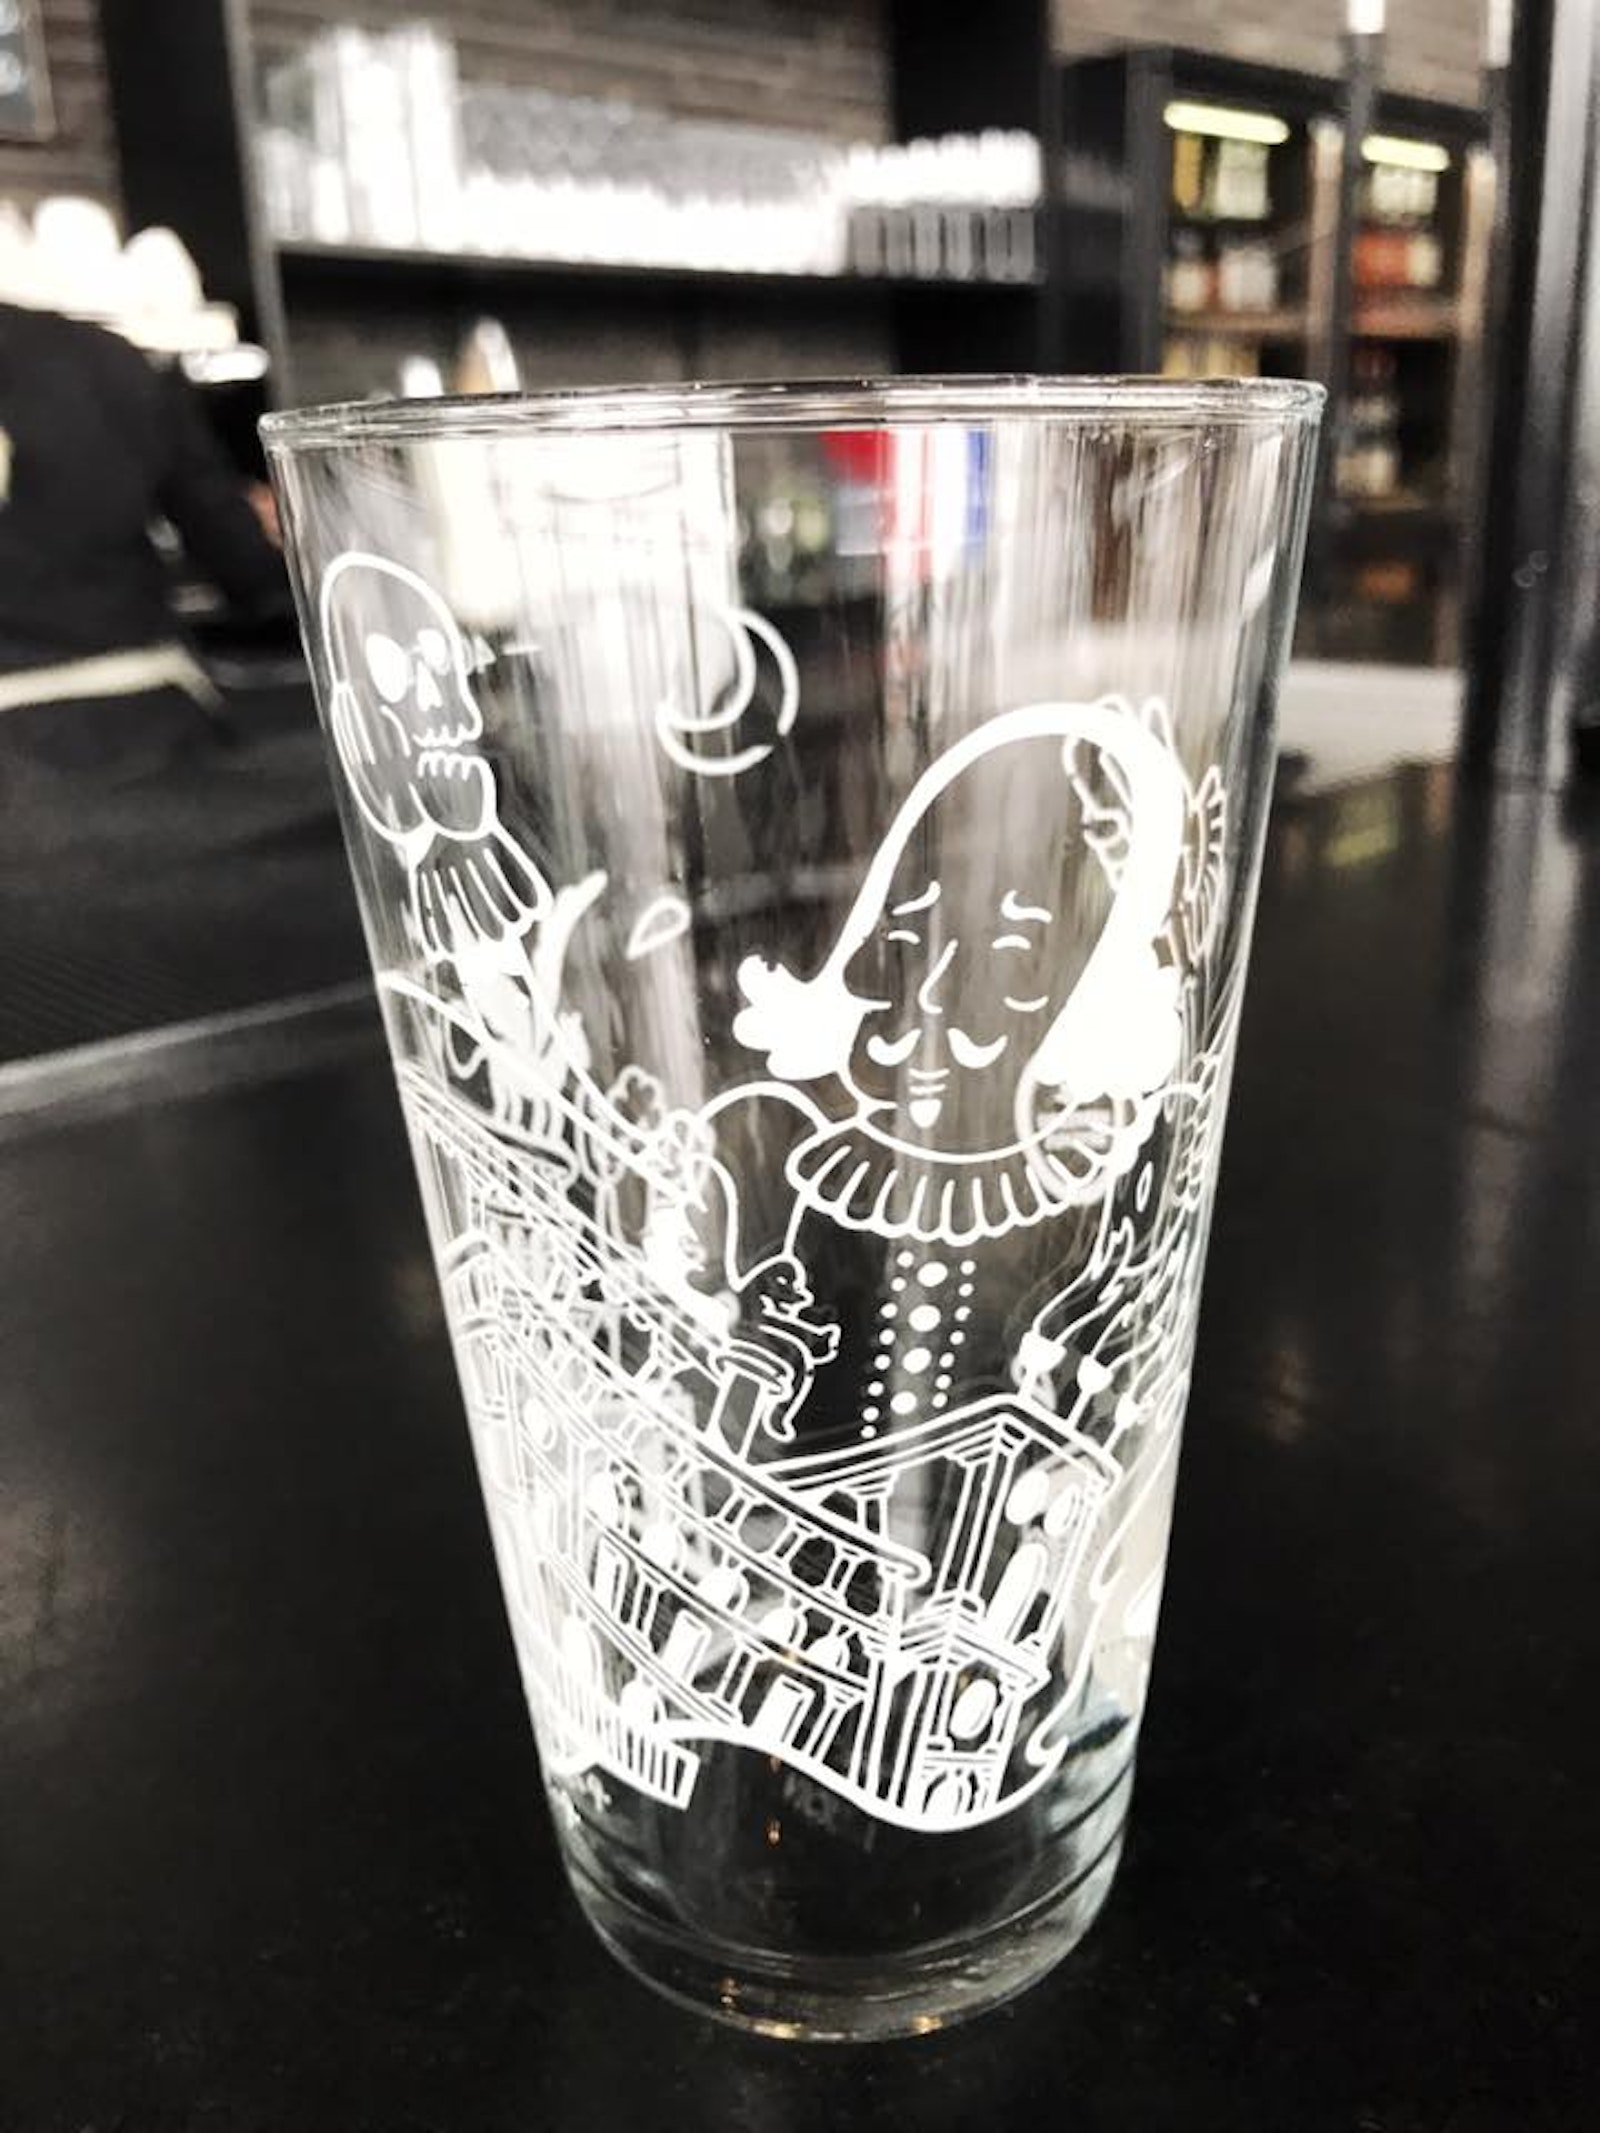 Beer glass by artist Mormor made for Nørrebro Bryghus